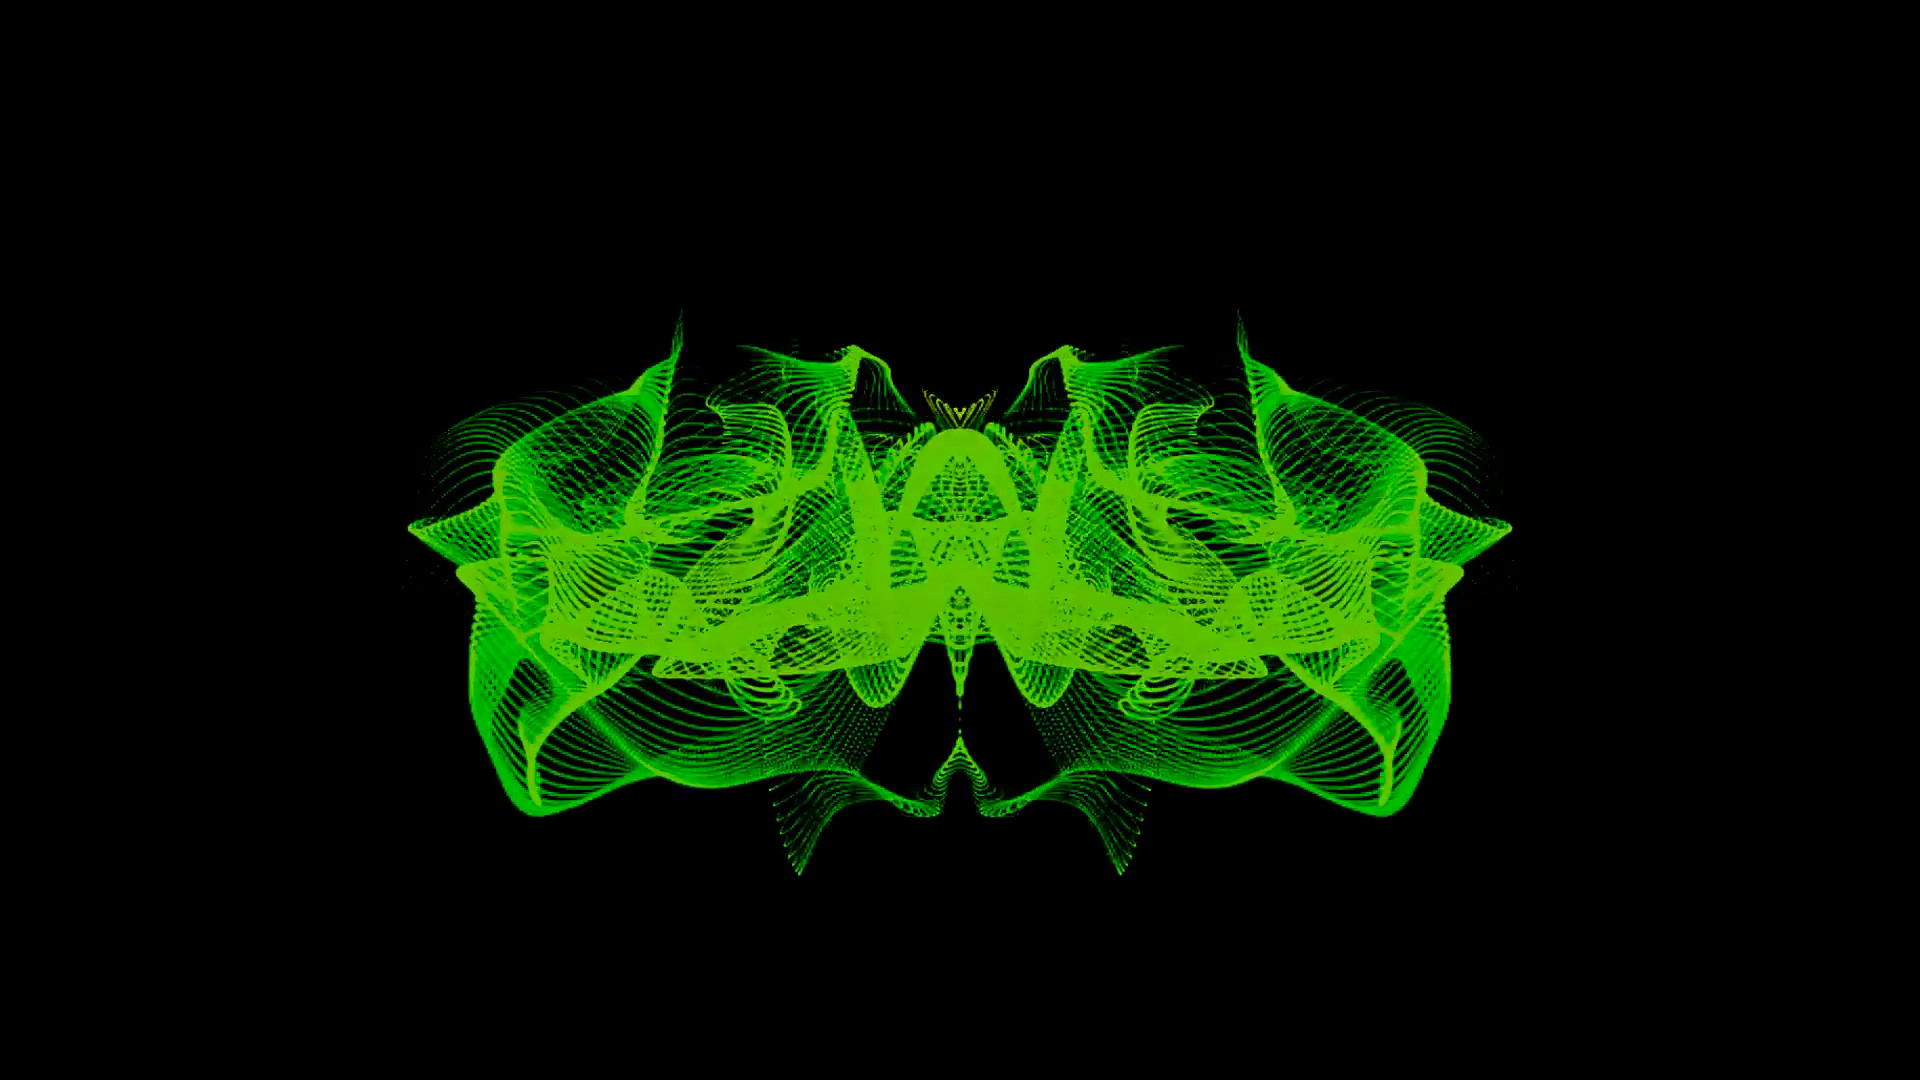 Neon Green Backgrounds 69 Images